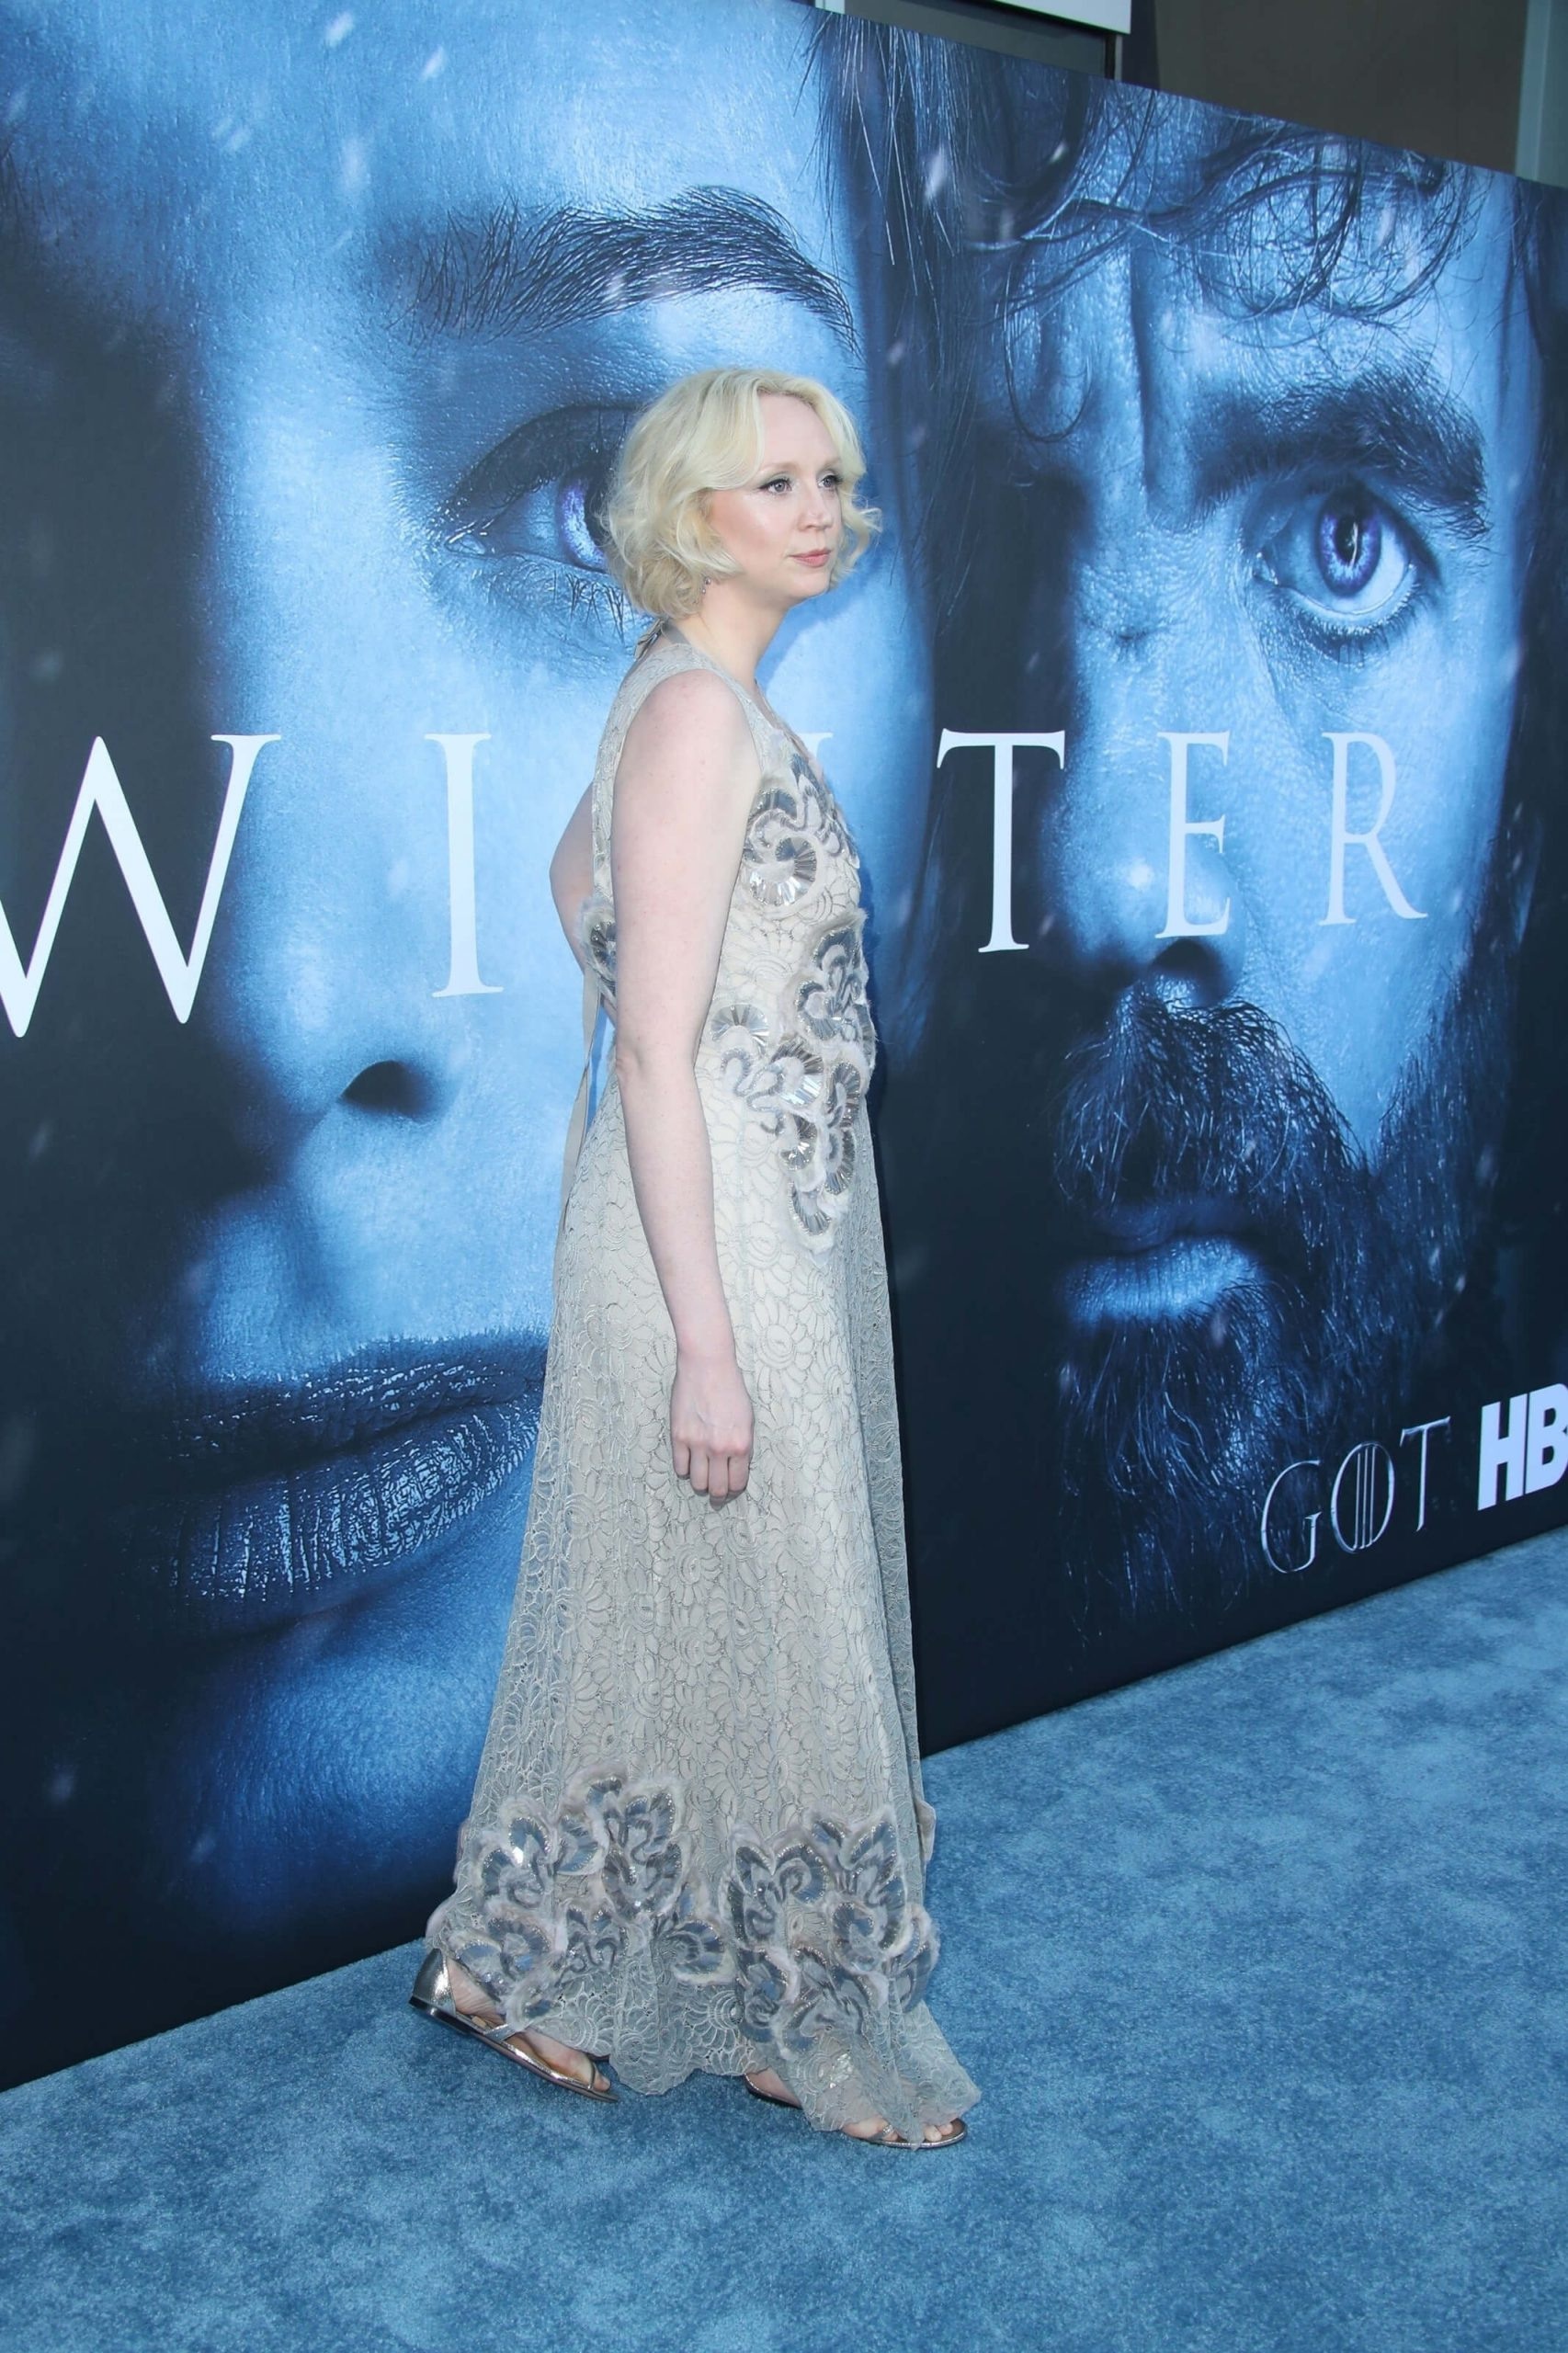 48 Gwendoline Christie Nude Pictures Will Make You Crave For More 19